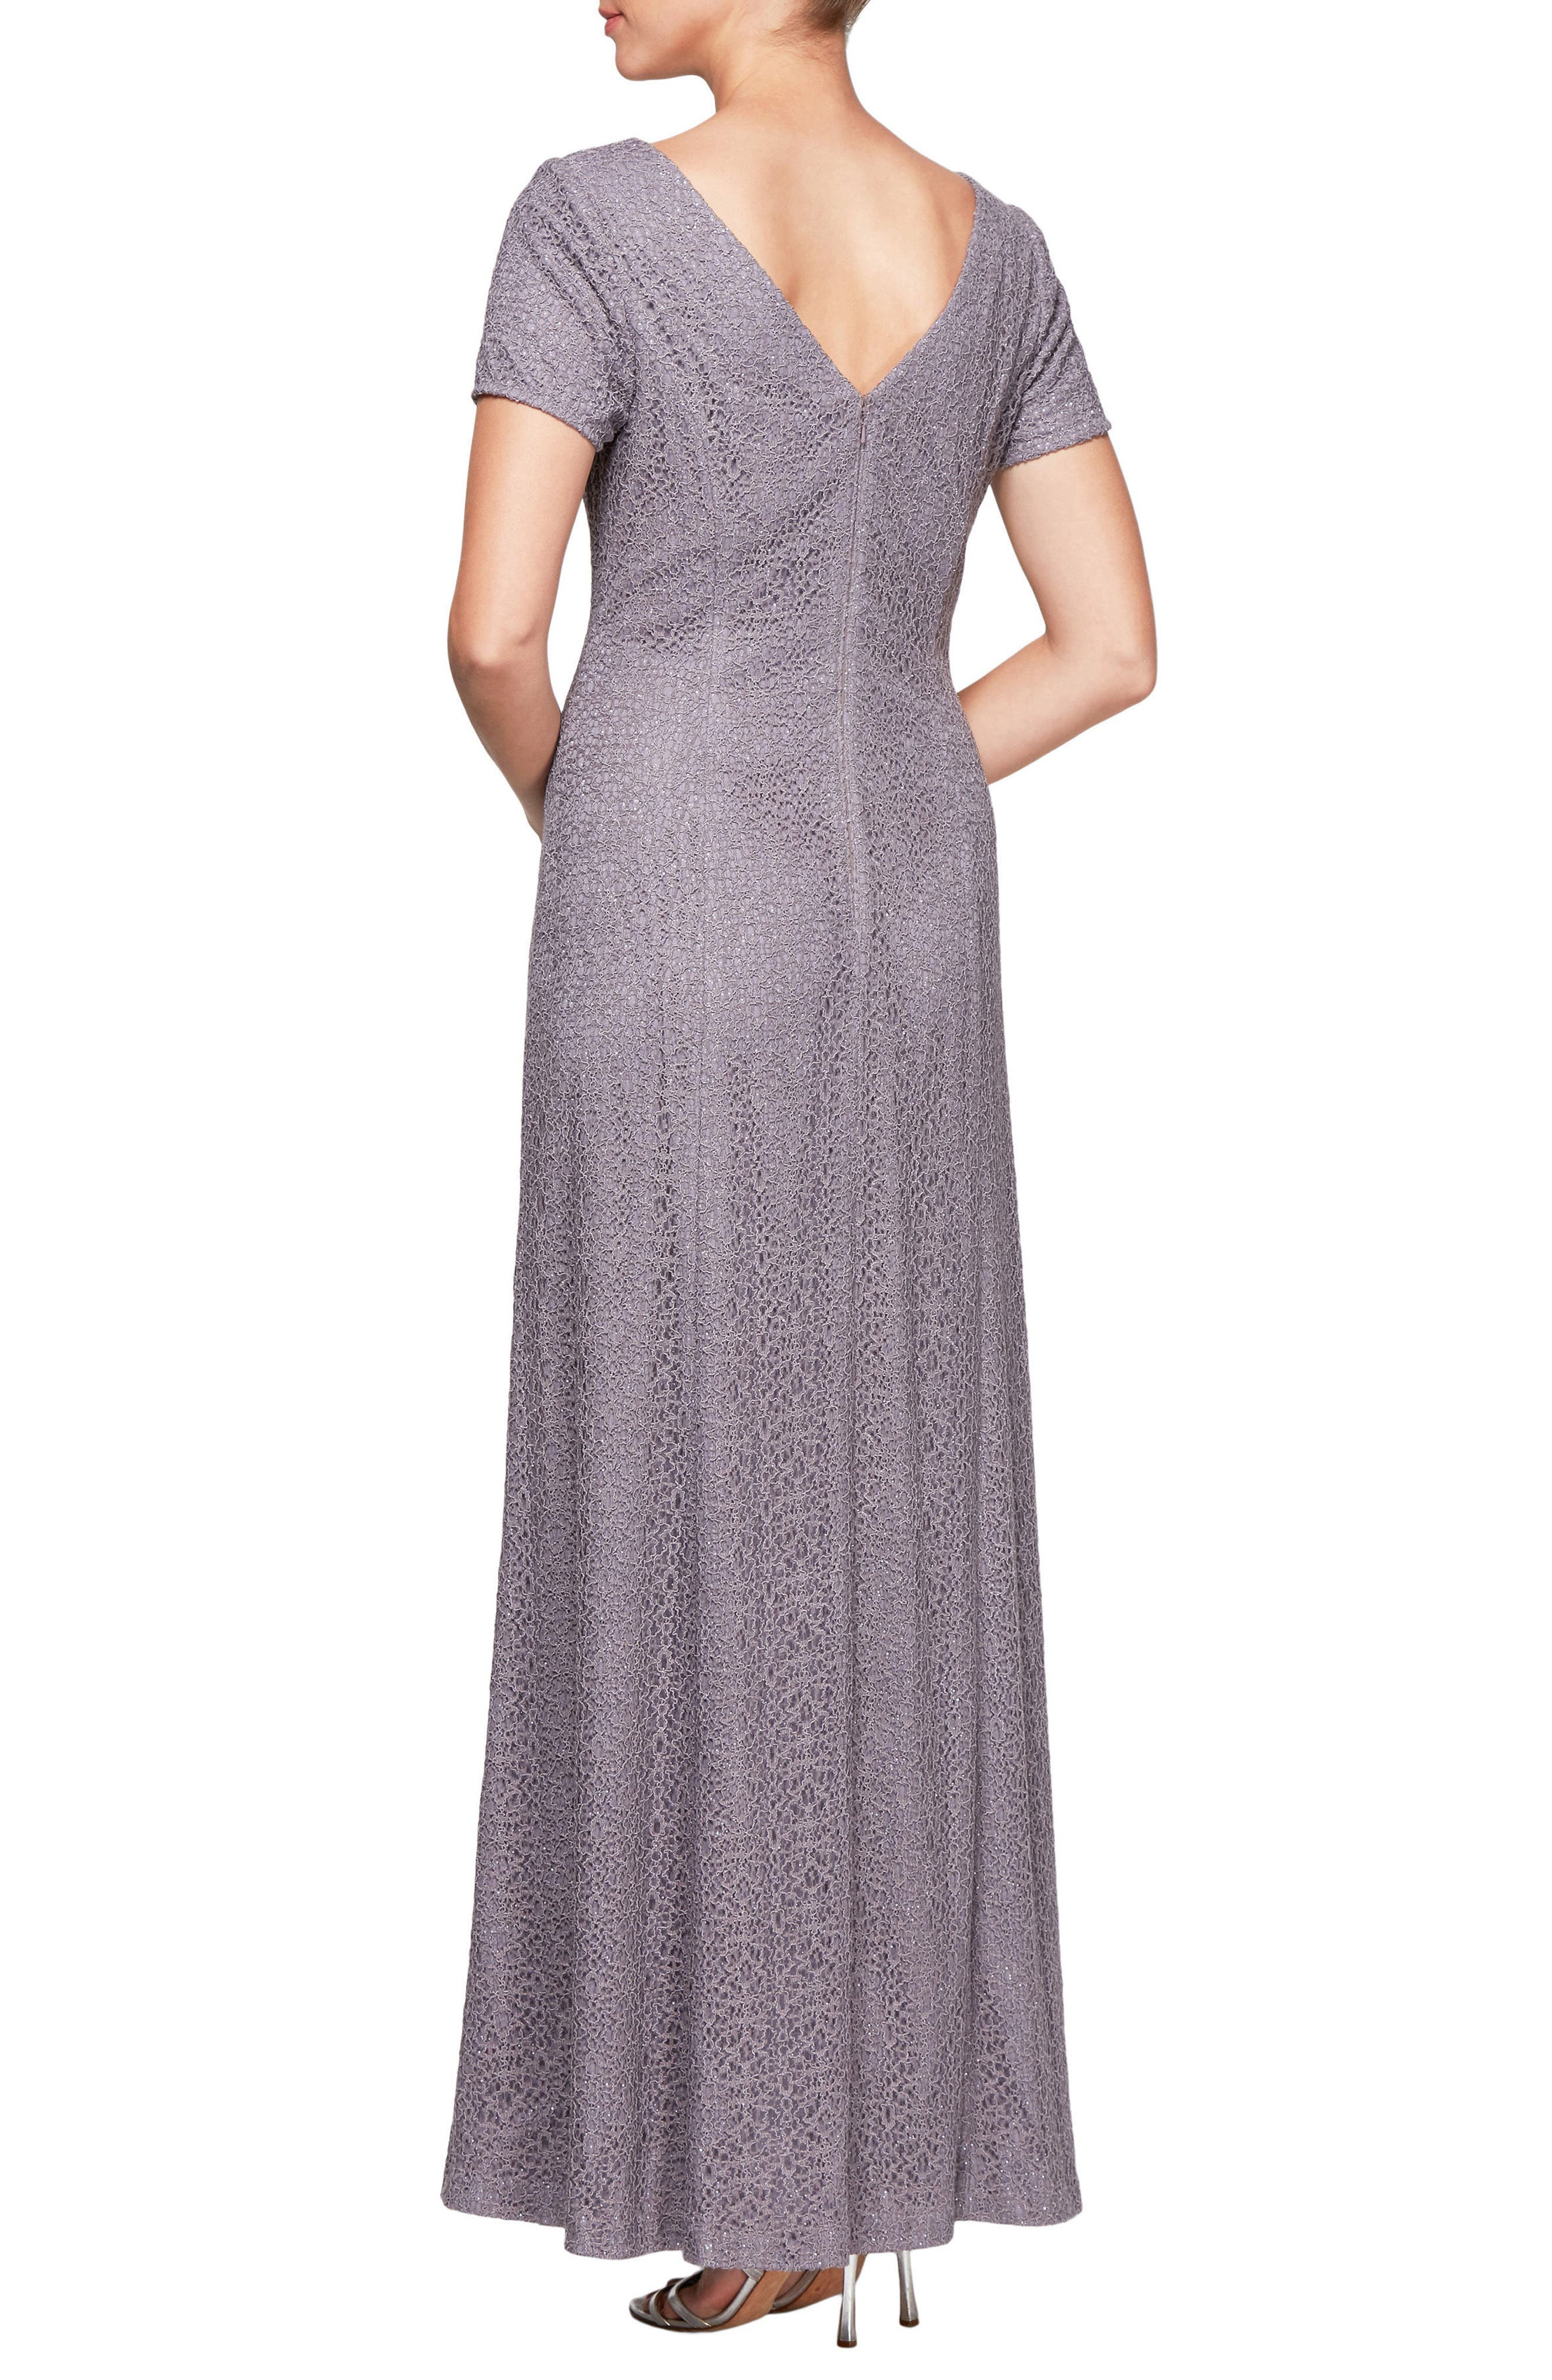 Illusion Neck Lace Gown,                             Alternate thumbnail 2, color,                             Amethyst